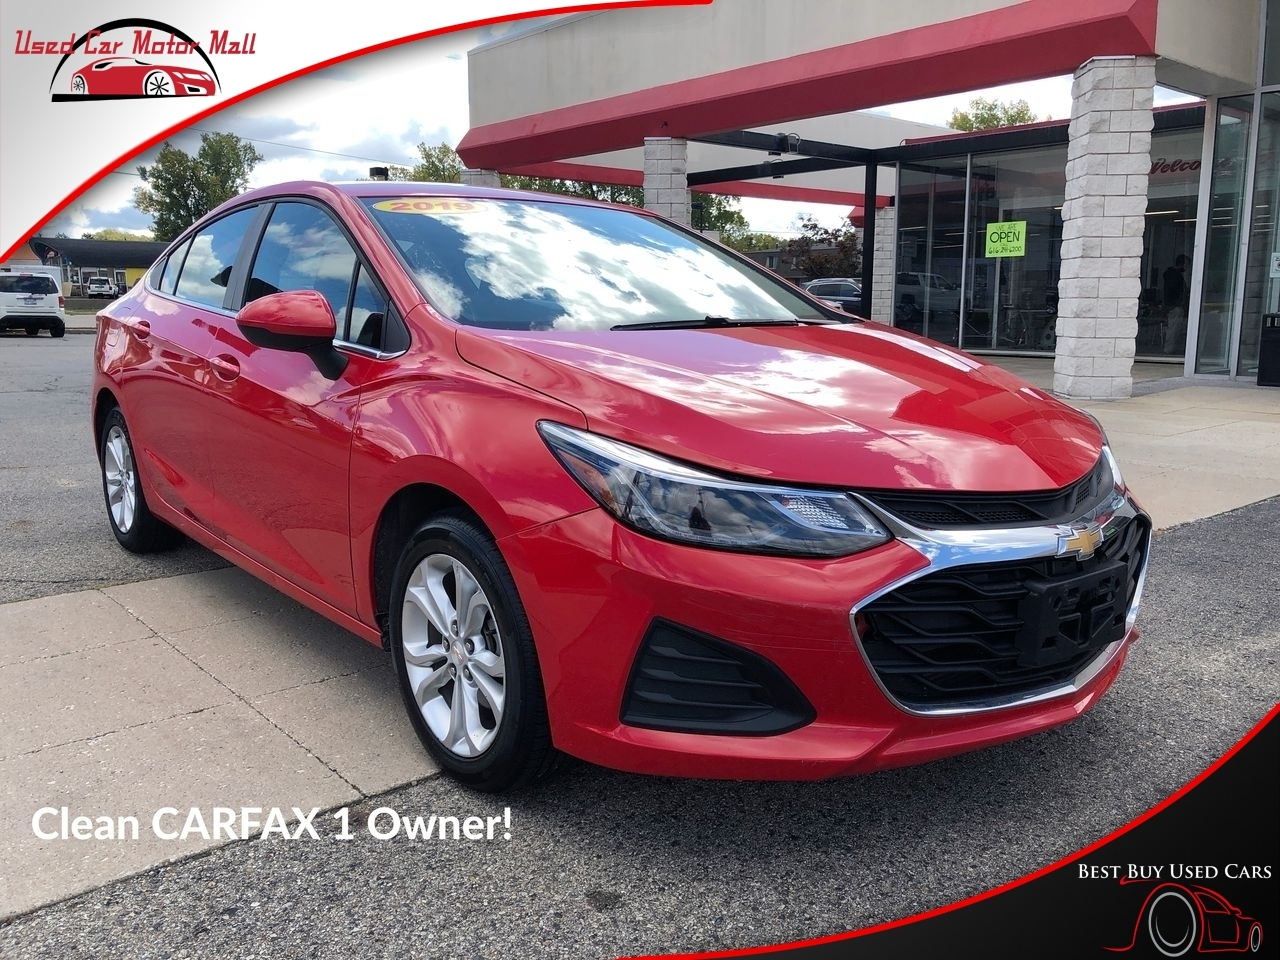 2018 Chevrolet Cruze Hatchback LT, 611677, Photo 1